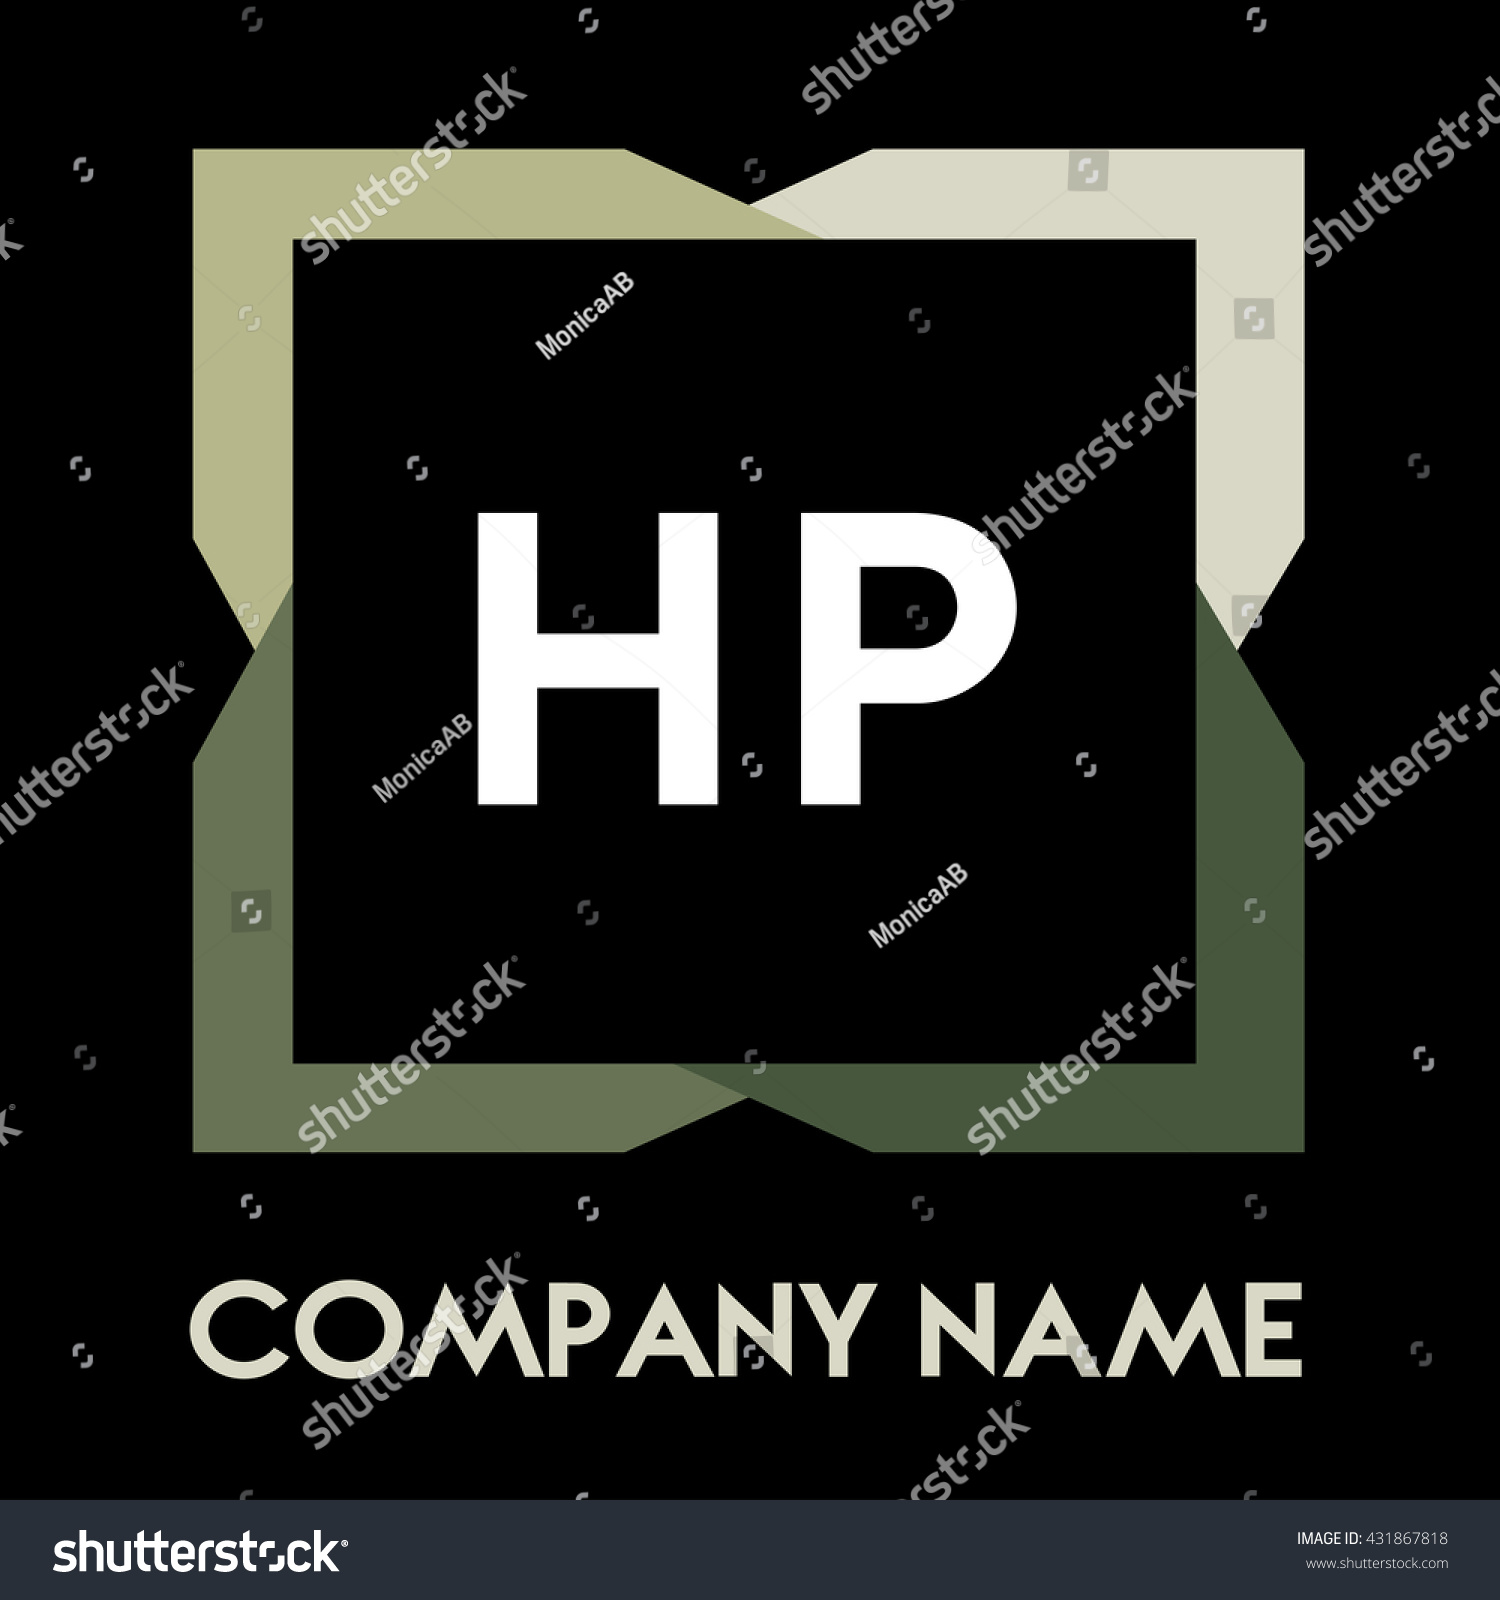 HP Letters Business Logo Creative Icon Design Template Elements In Abstract Background Identity